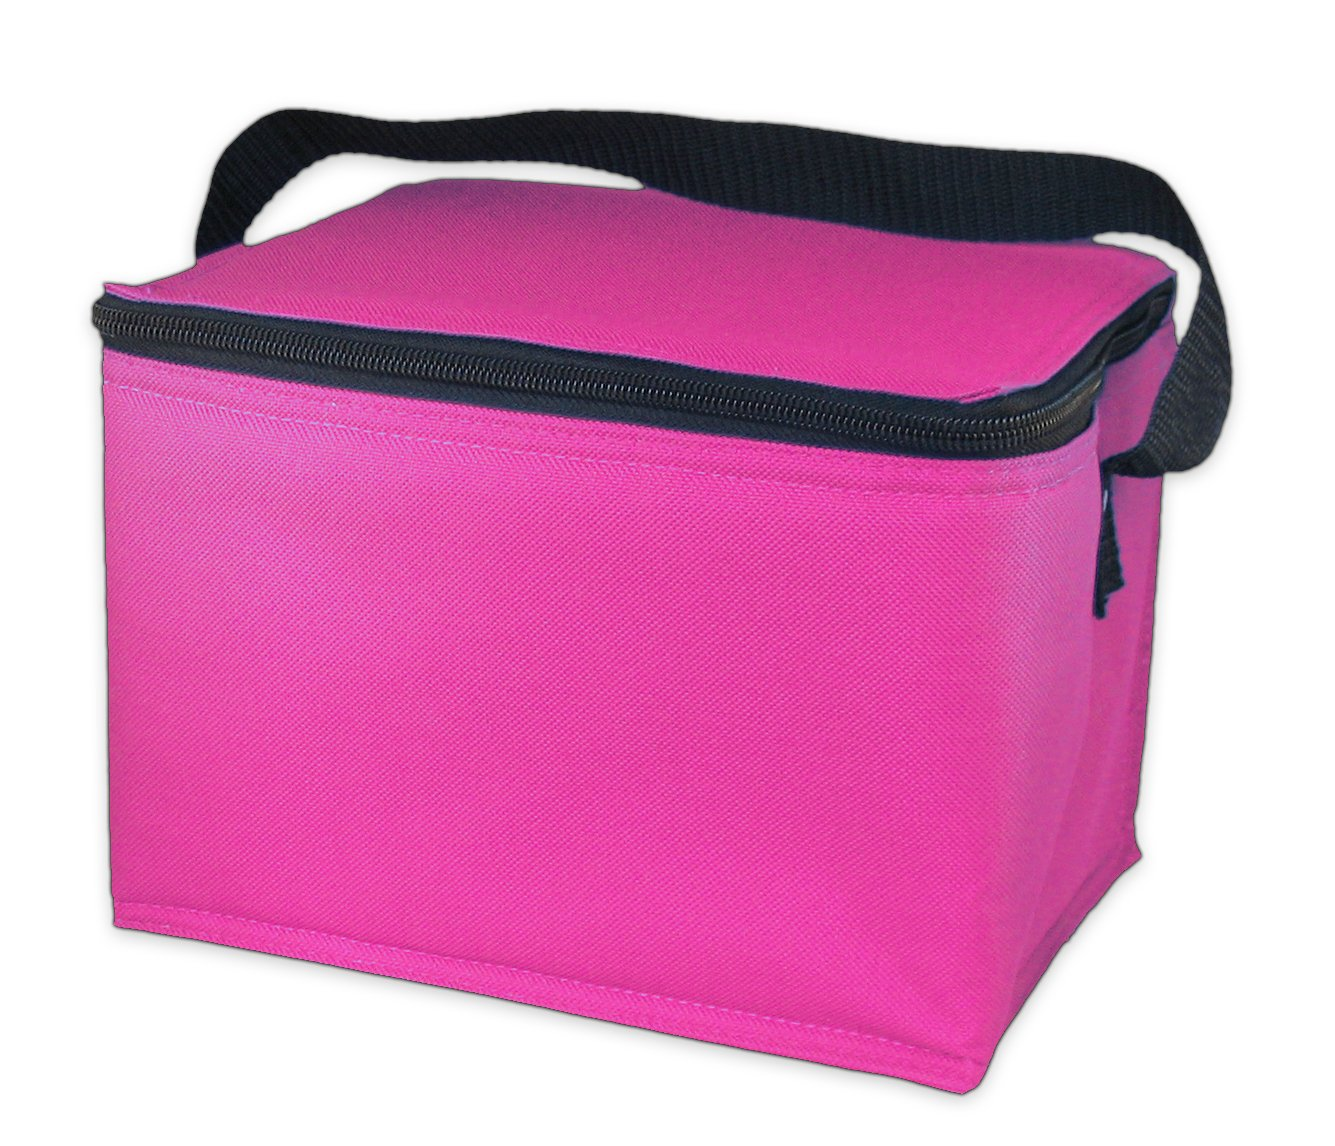 Easylunchboxes Insulated Lunch Box Cooler Bag Pink Coolerbag Coleman Kitchen Dining